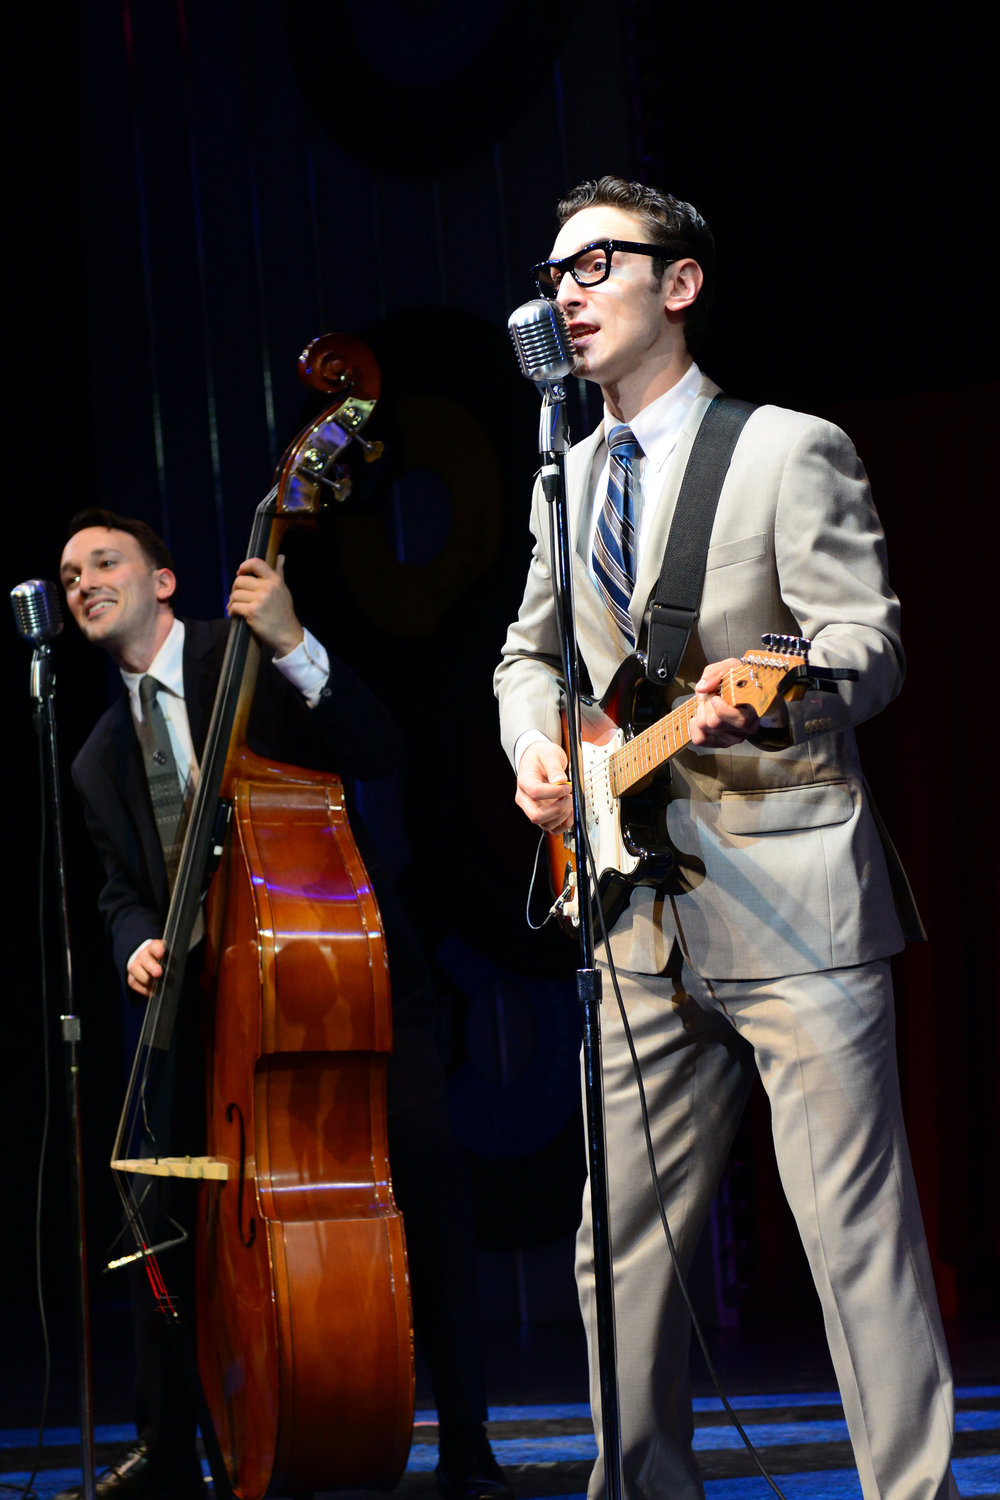 2013_OP_Buddy_Sam-Weber_as_Joe-B-Mauldin_Kurt-Jenkins_as_Buddy-Holly_RGB.jpg